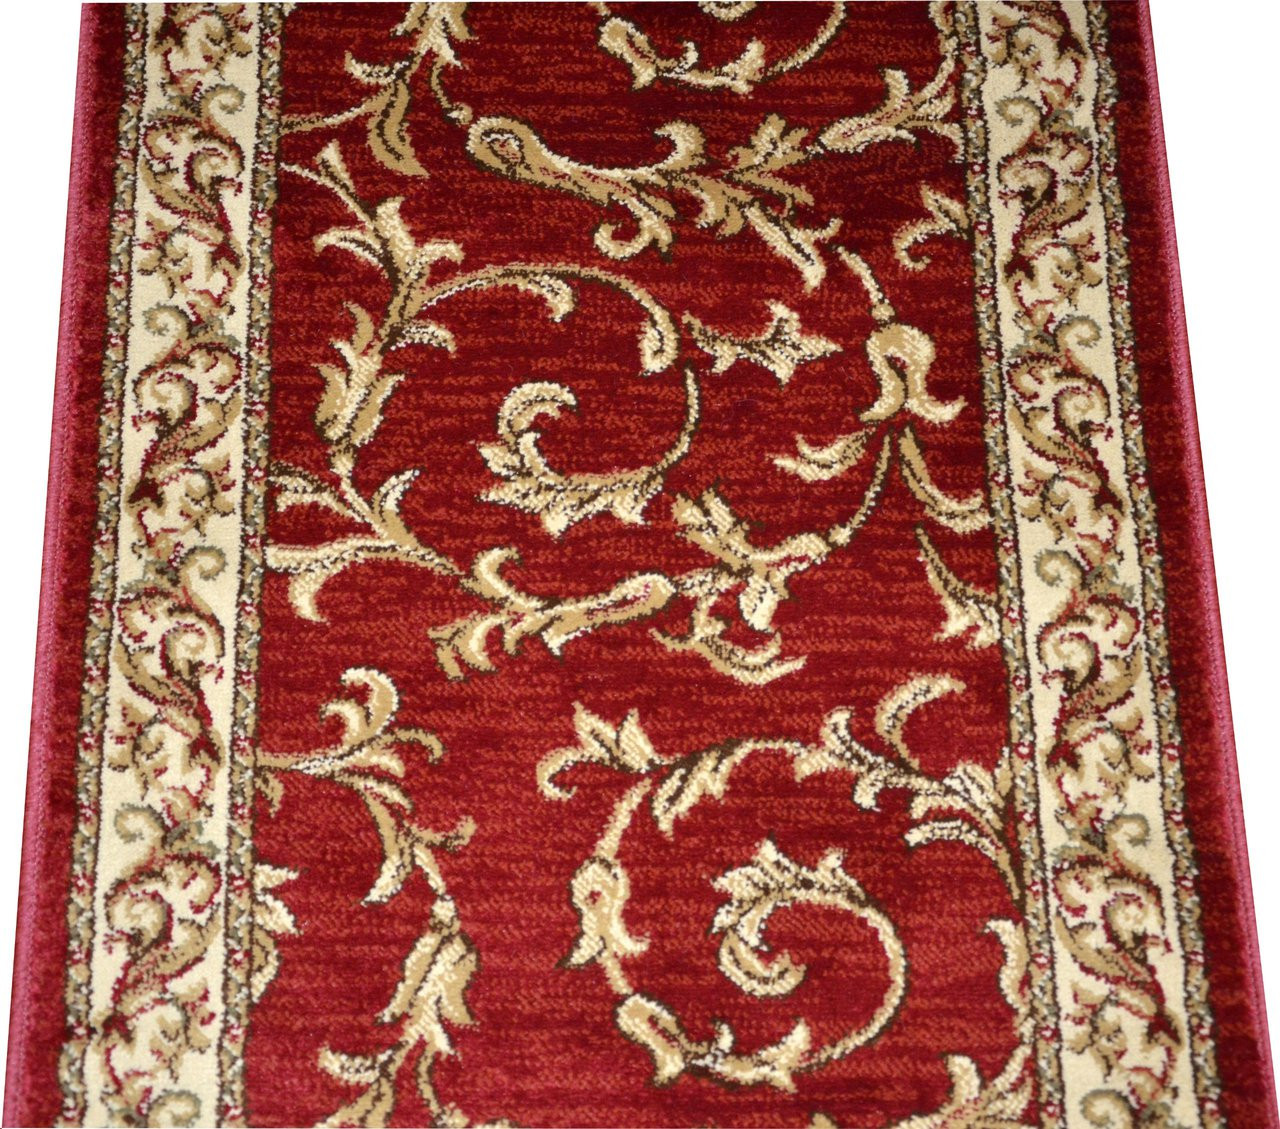 Dean Red Scrollworks Carpet Rug Hallway Stair Runner Purchase By The Linear Foot Dean Stair Treads